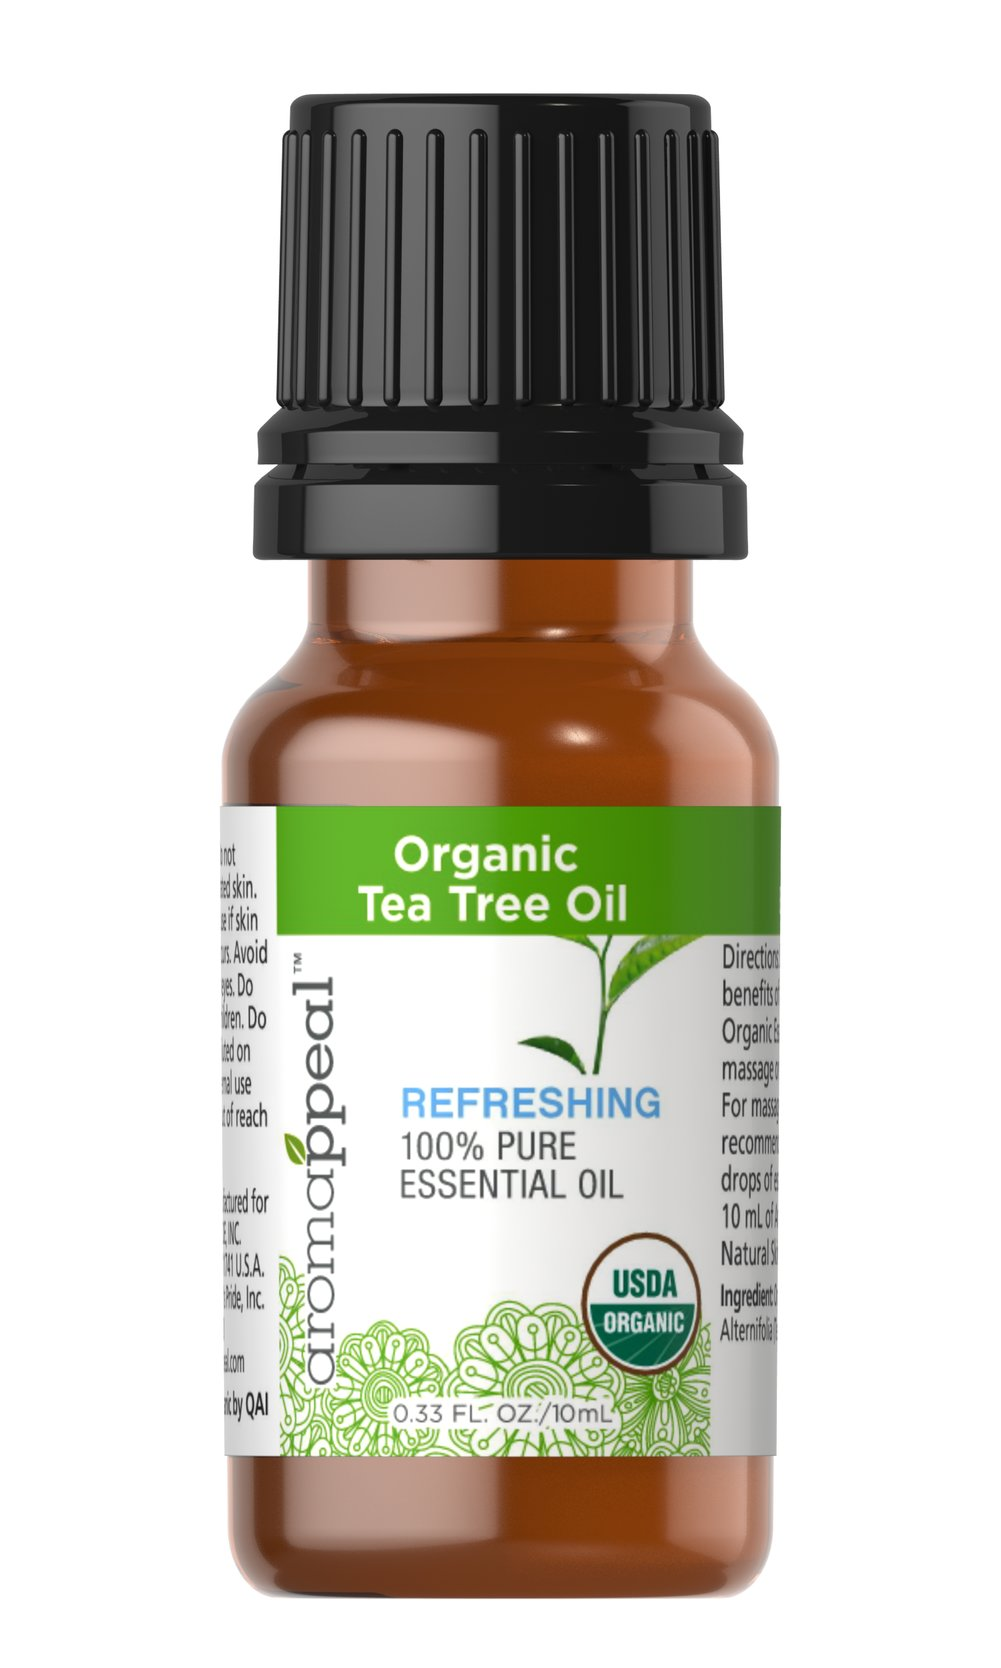 Organic Tea Tree Oil <p><strong>NEW! Organic Aromappeal - USDA</strong></p><p>For total body purification, go with the cleansing, invigorating power of Tea Tree Oil. Tea Tree Oil has a strong, freshly pleasant aroma.<br /></p><ul><li>    Traditional Uses: Purifying, uplifting, cleansing.</li><li>    Botanical Name: Melaleuca alternifolia</li><li>